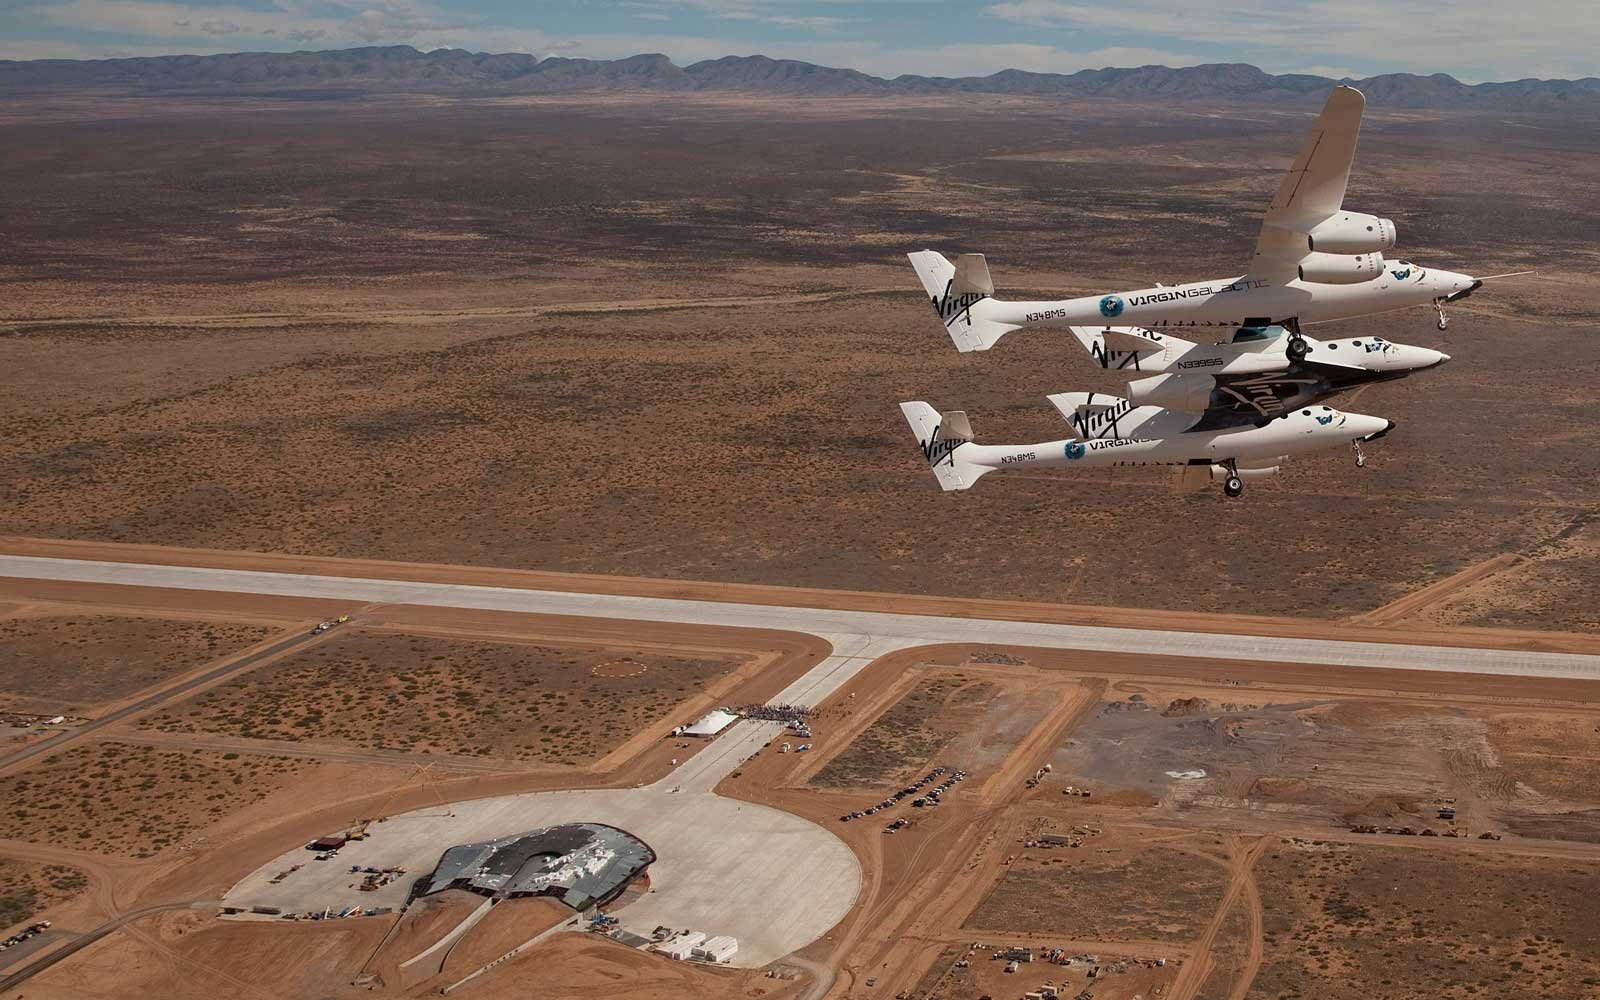 Virgin Galactic vehicles WhiteKnightTwo and SpaceshipTwo fly over Spaceport America